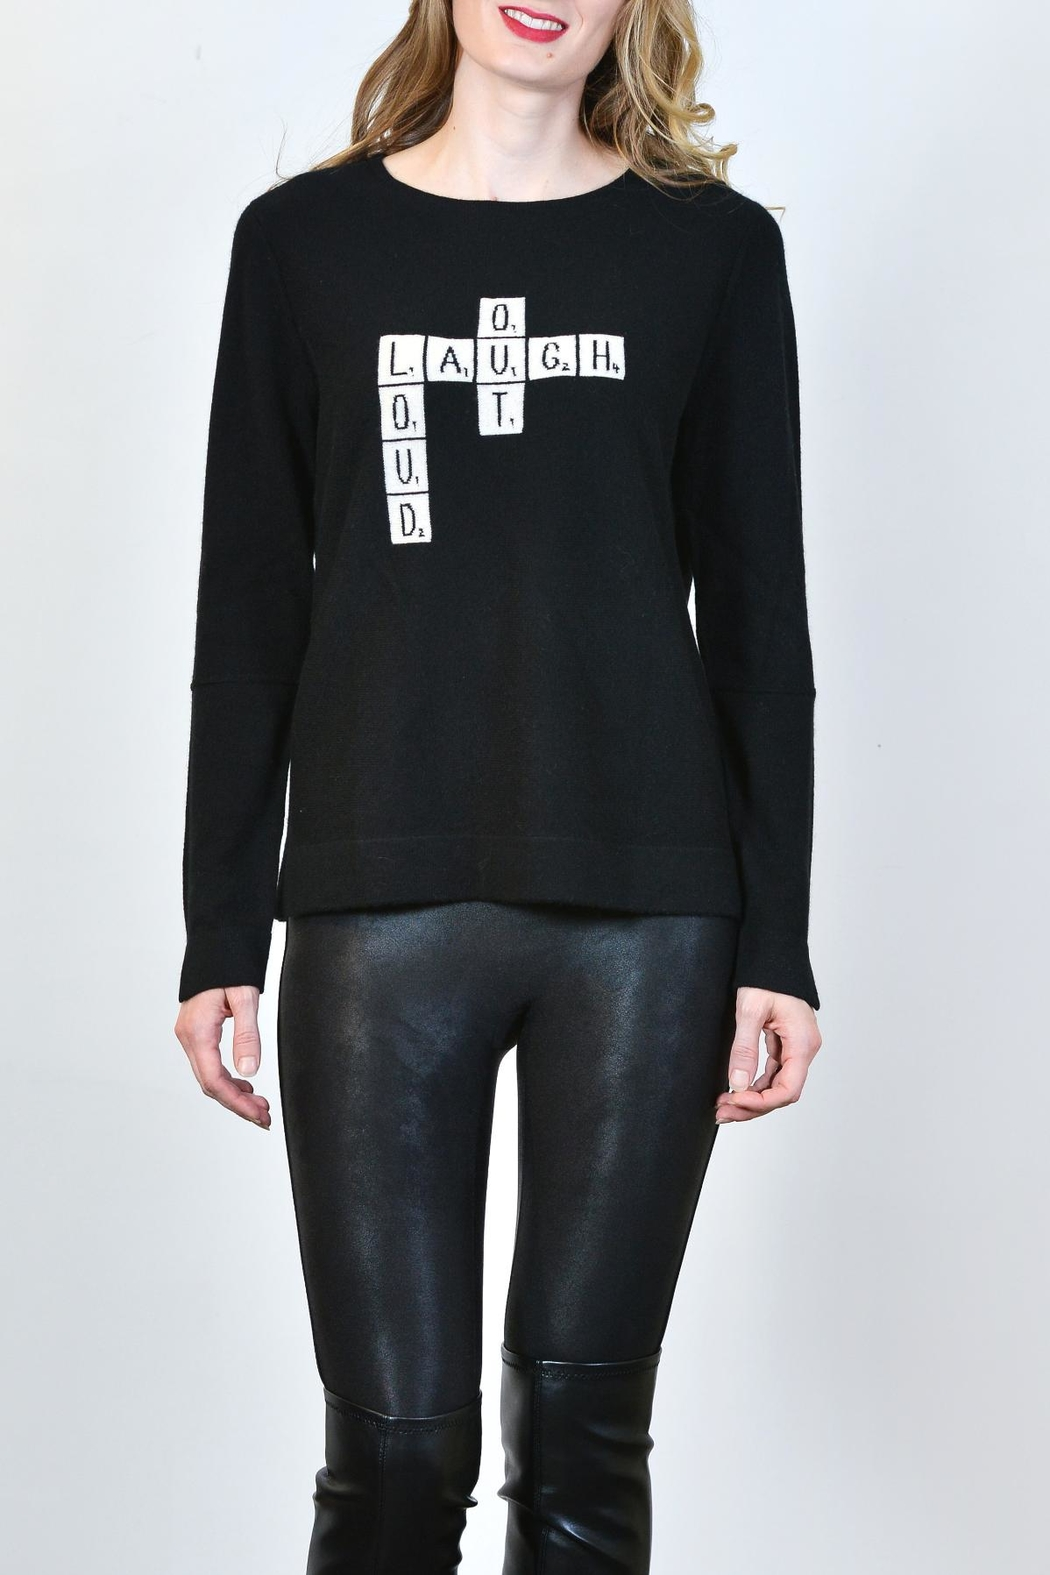 Lisa Todd Crossword Puzzle Cashmere Sweater - Front Cropped Image